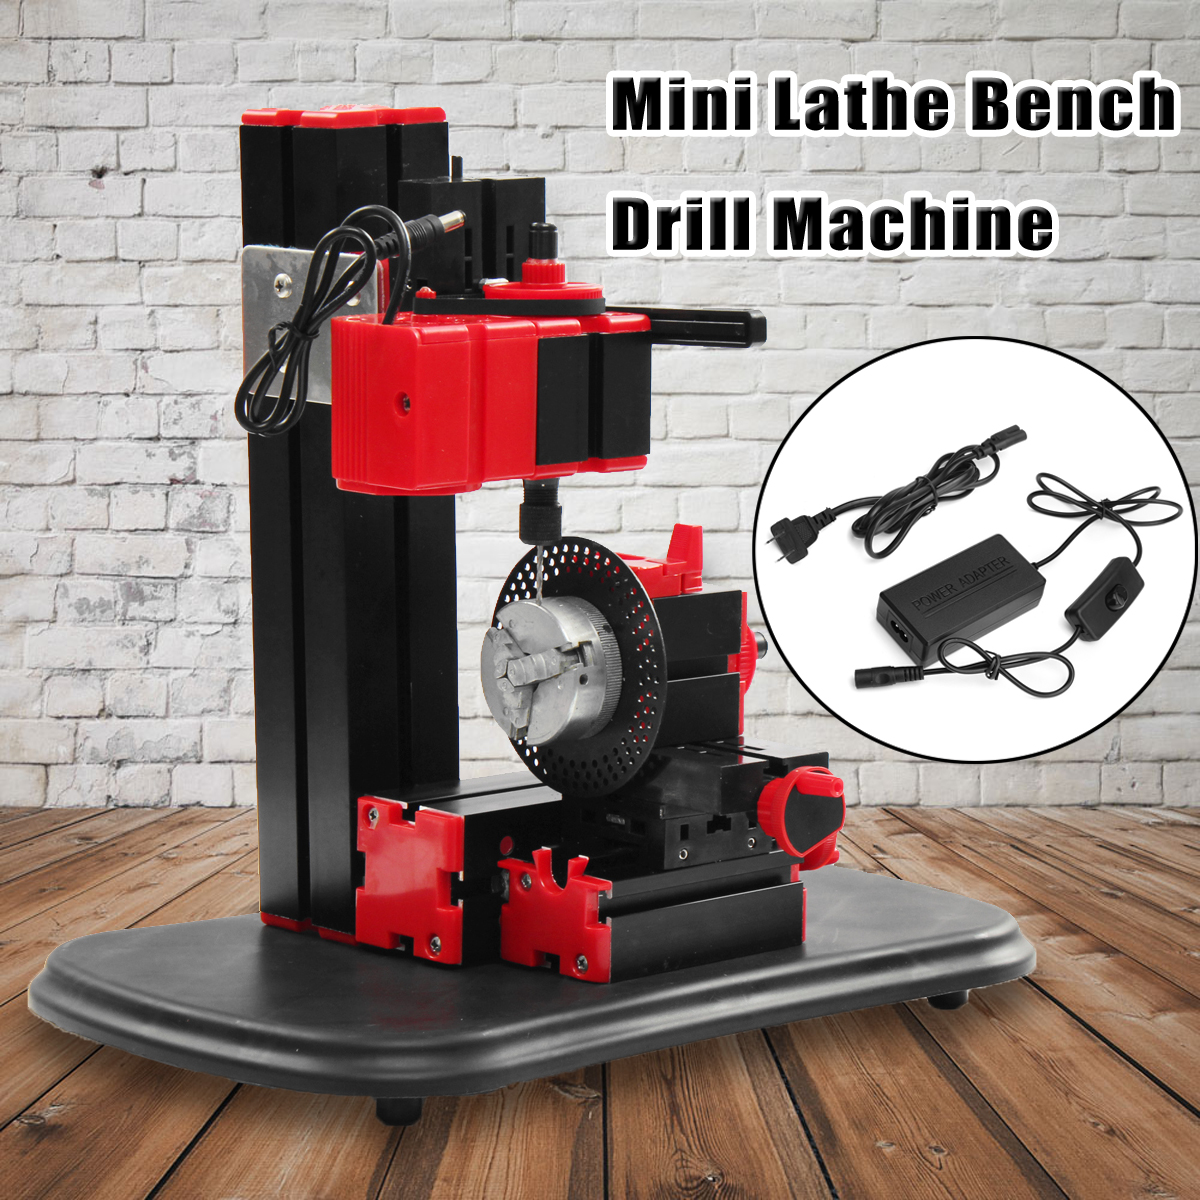 US $79 14 52% OFF|110V 240V Mini Lathe Bench Drill Machine DIY Electric  Drill Woodwork Model Making Tool Lathe Milling Machine Kit-in Electric  Drills